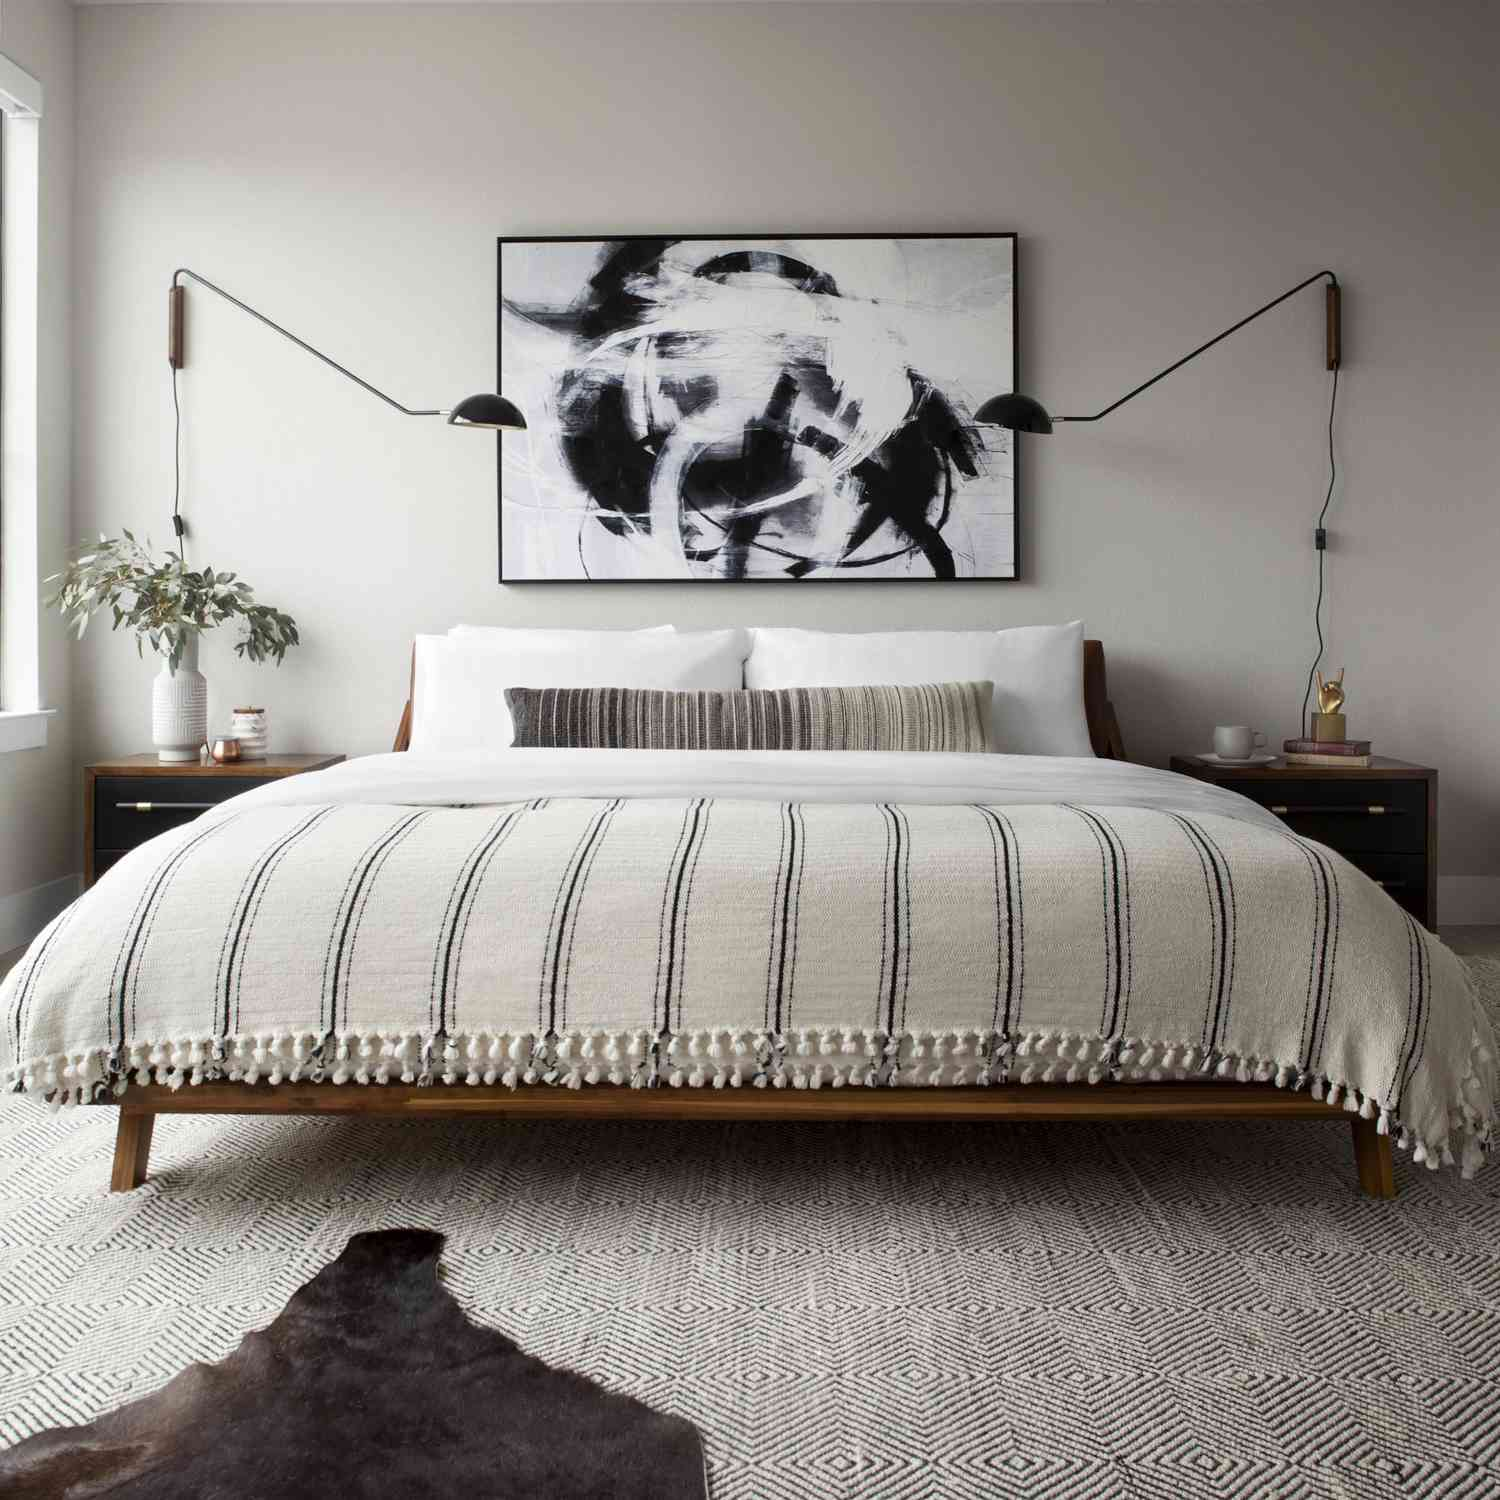 A bedroom with swing-arm sconces mounted on the wall